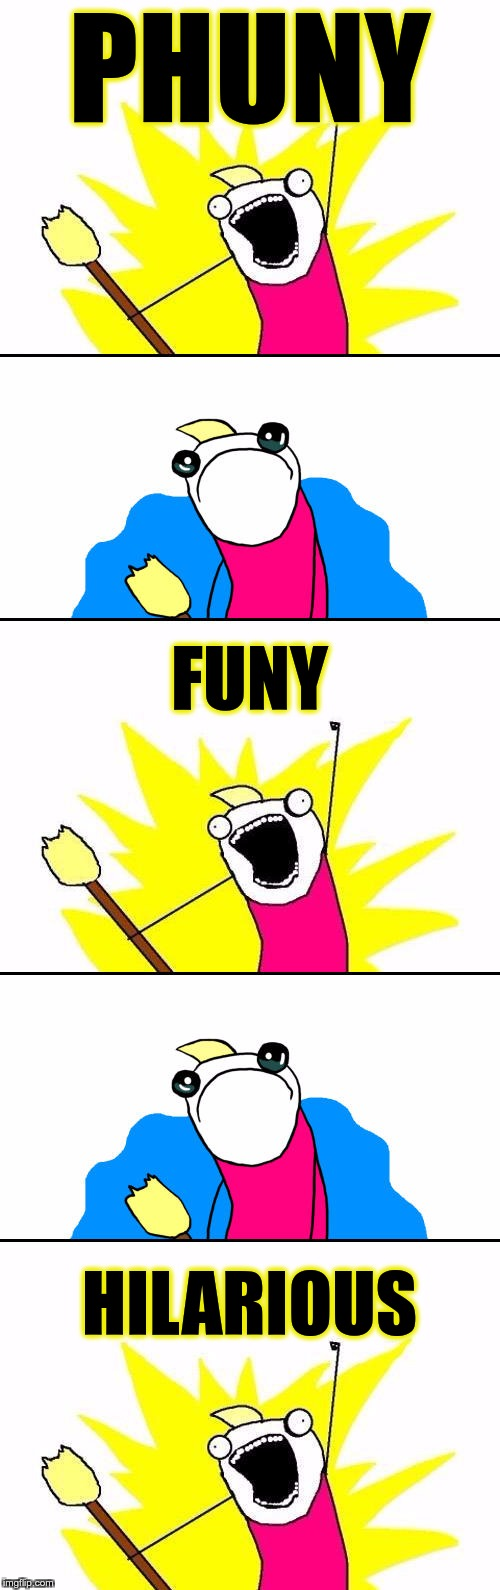 SPELLING IS HARD | PHUNY FUNY HILARIOUS | image tagged in memes,funny,funy,phuny,hilarious | made w/ Imgflip meme maker